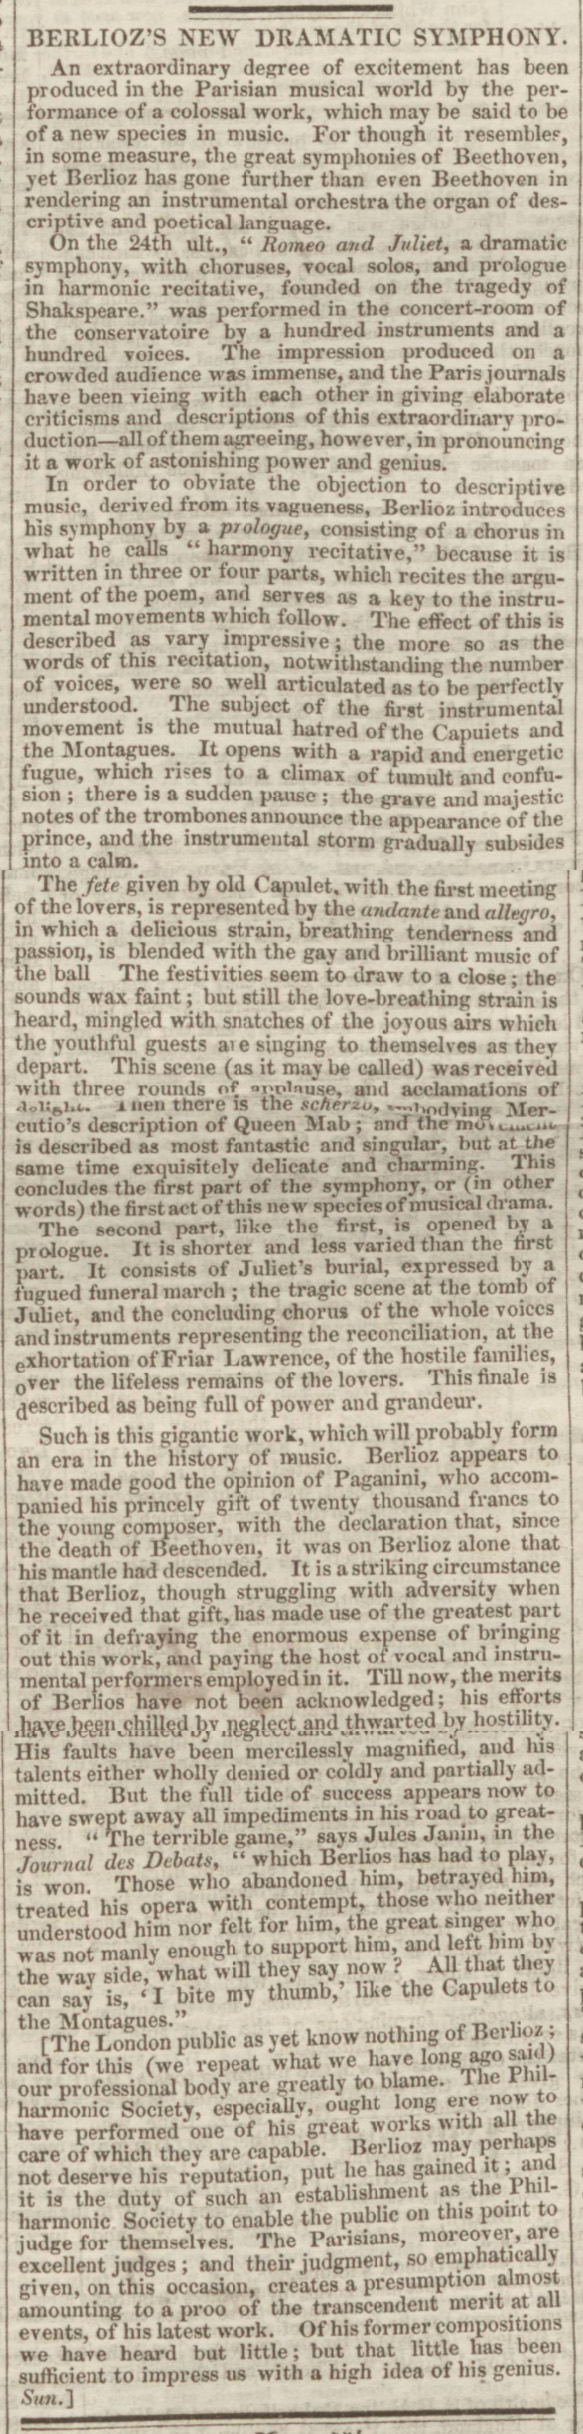 historical newspaper report on hector berlioz